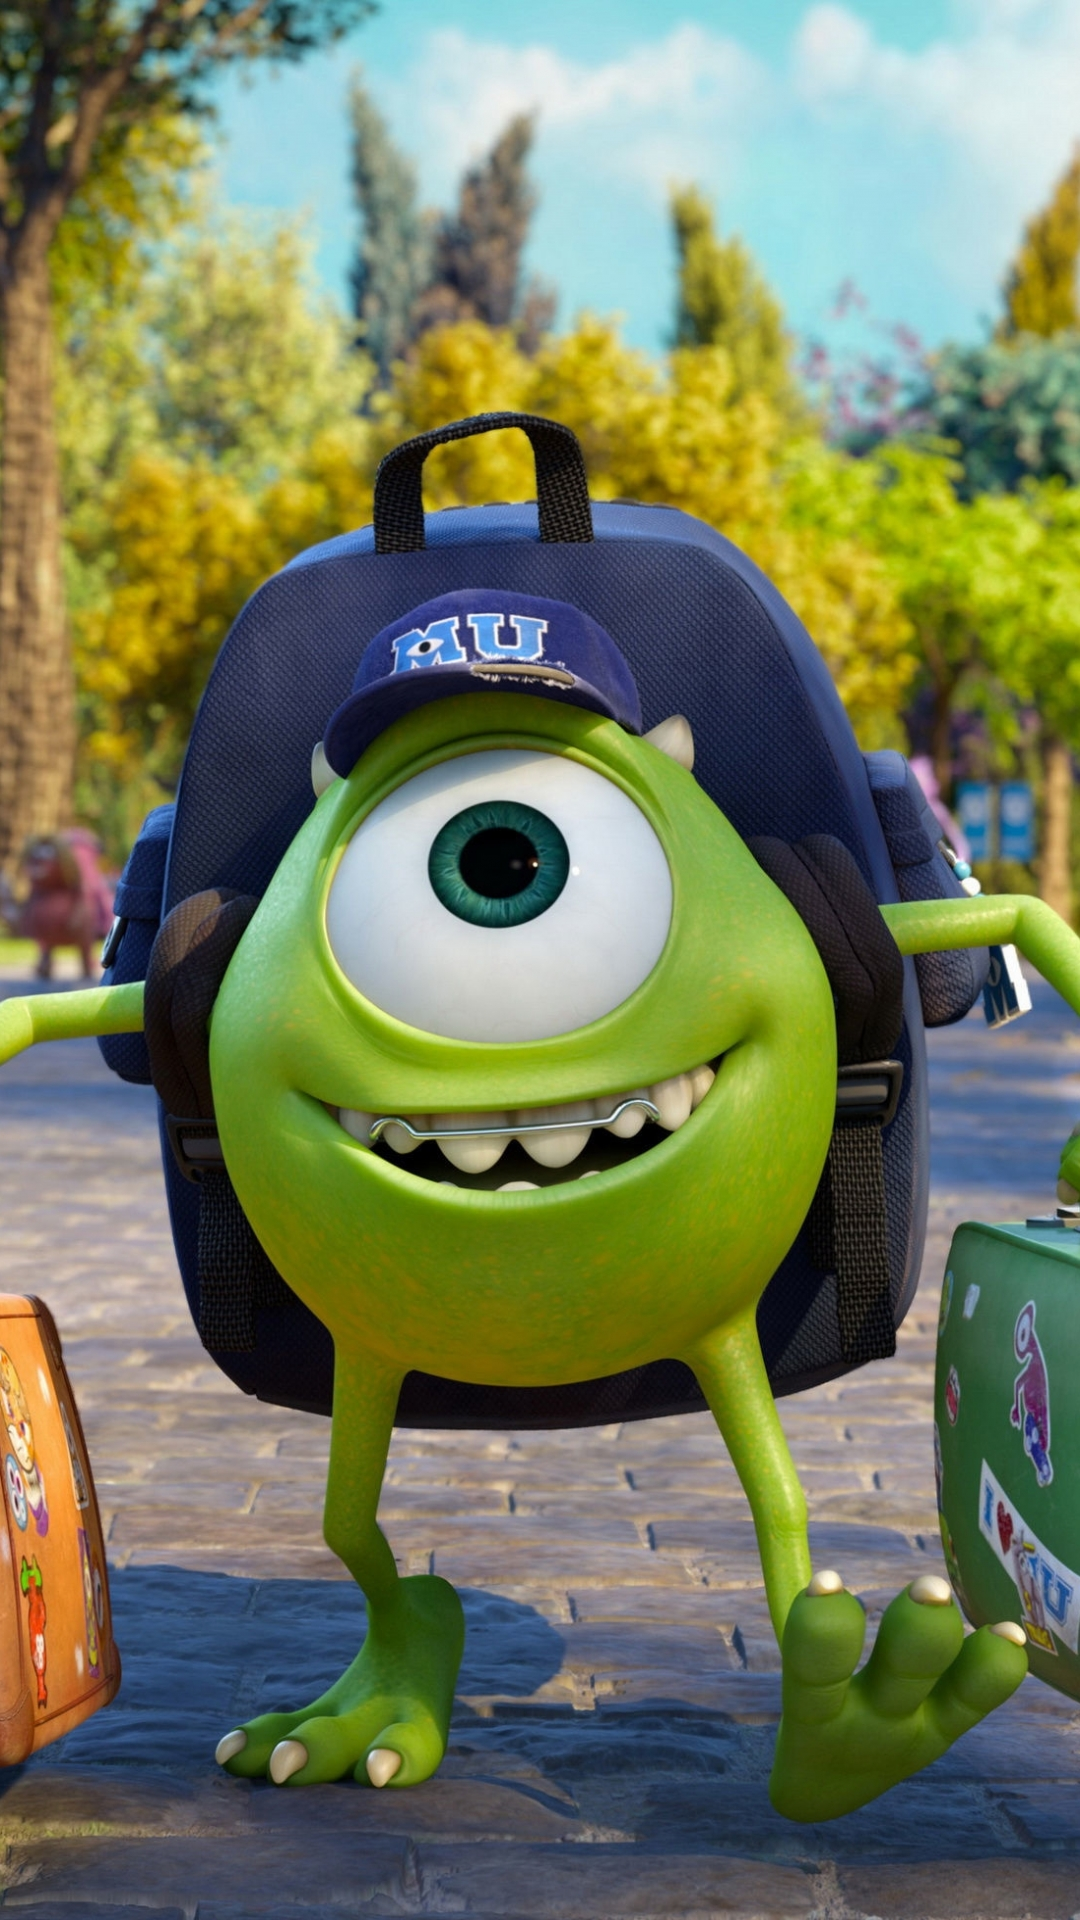 Wallpaper iphone monster university - Movie Monsters University Mike Wazowski Wallpaper 131995